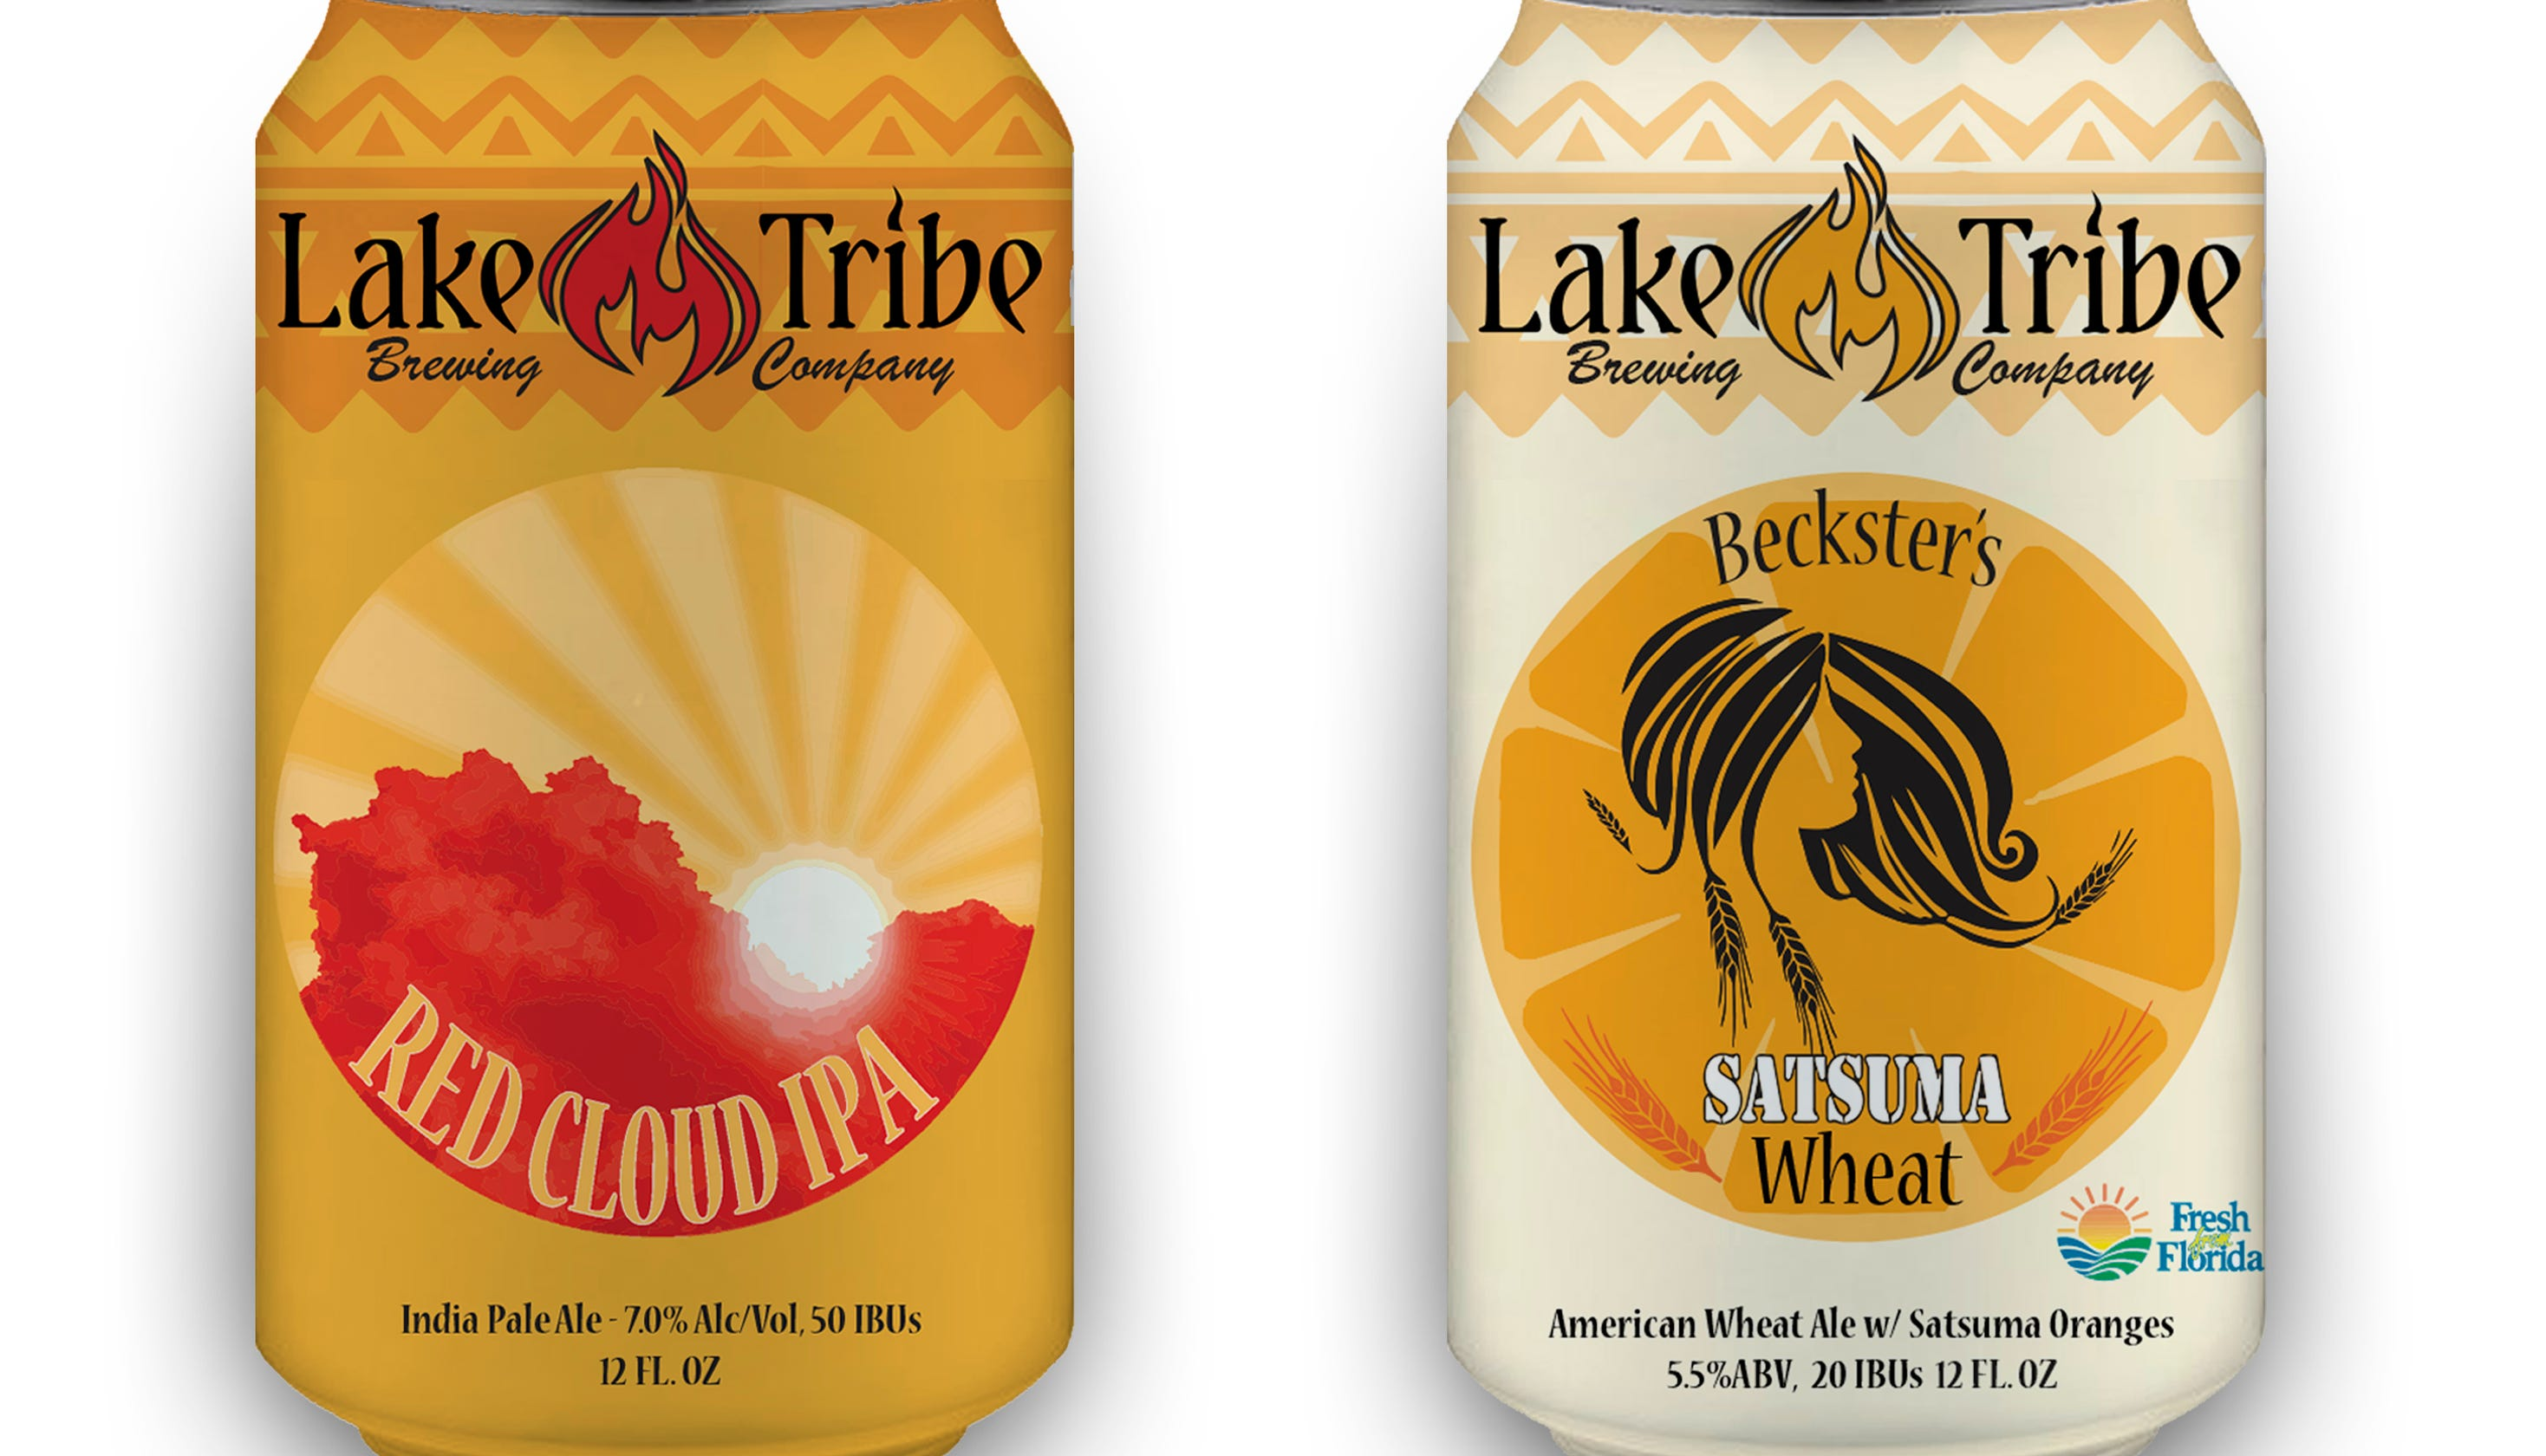 Lake Tribe beer is coming to cans with Red Cloud IPA